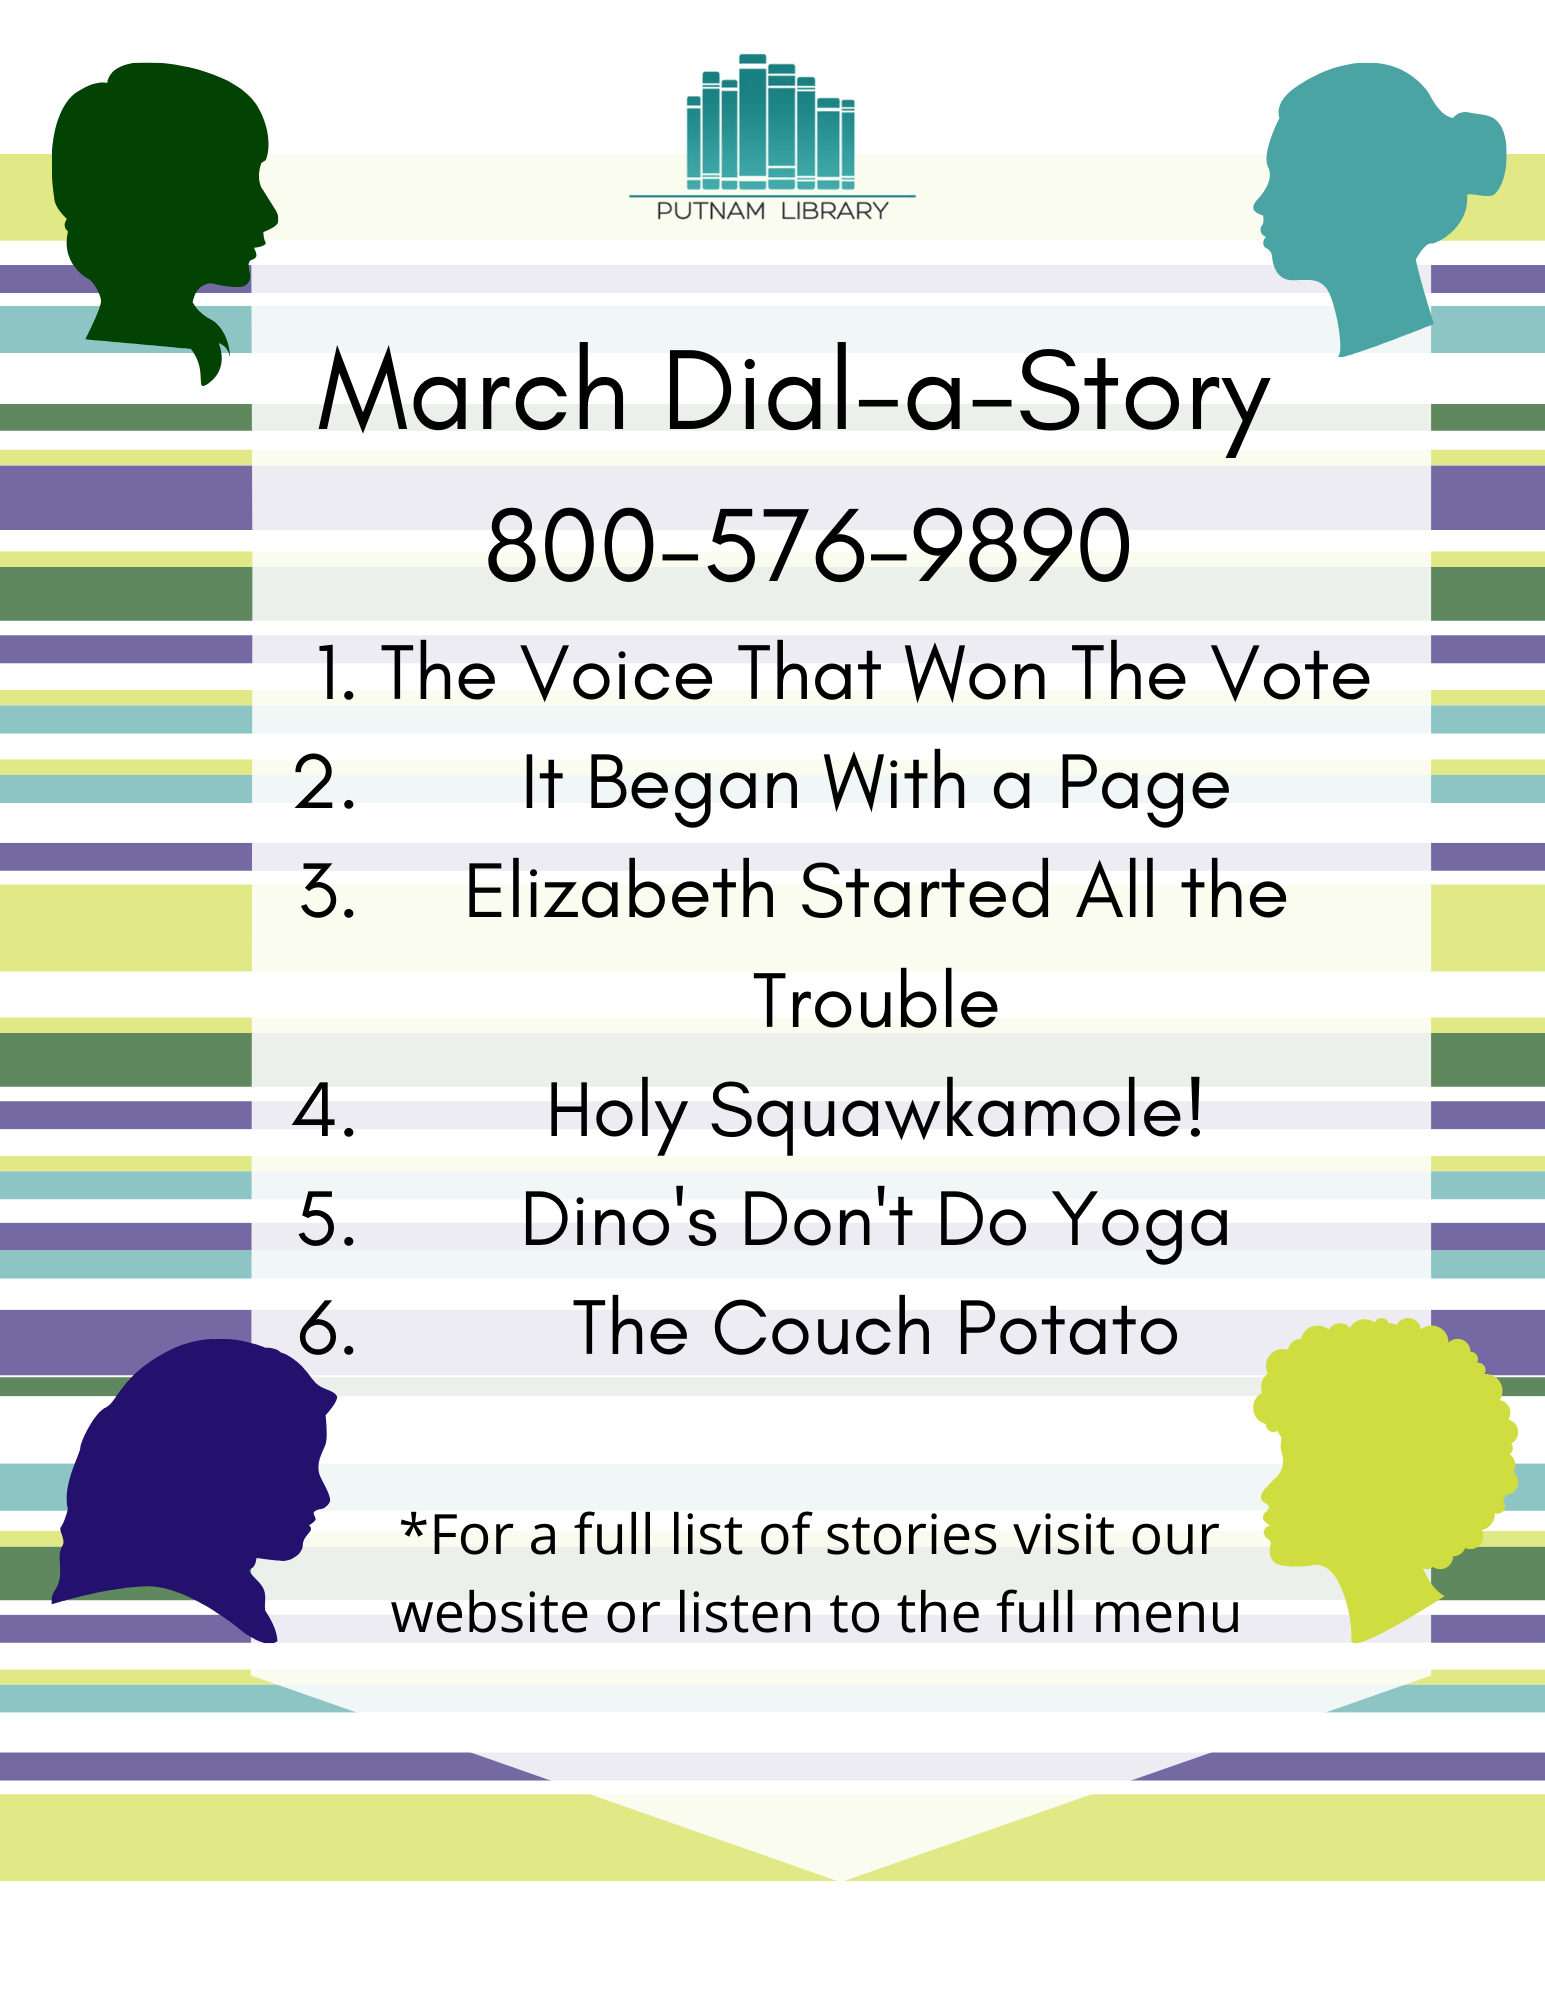 March Dial-a-Story